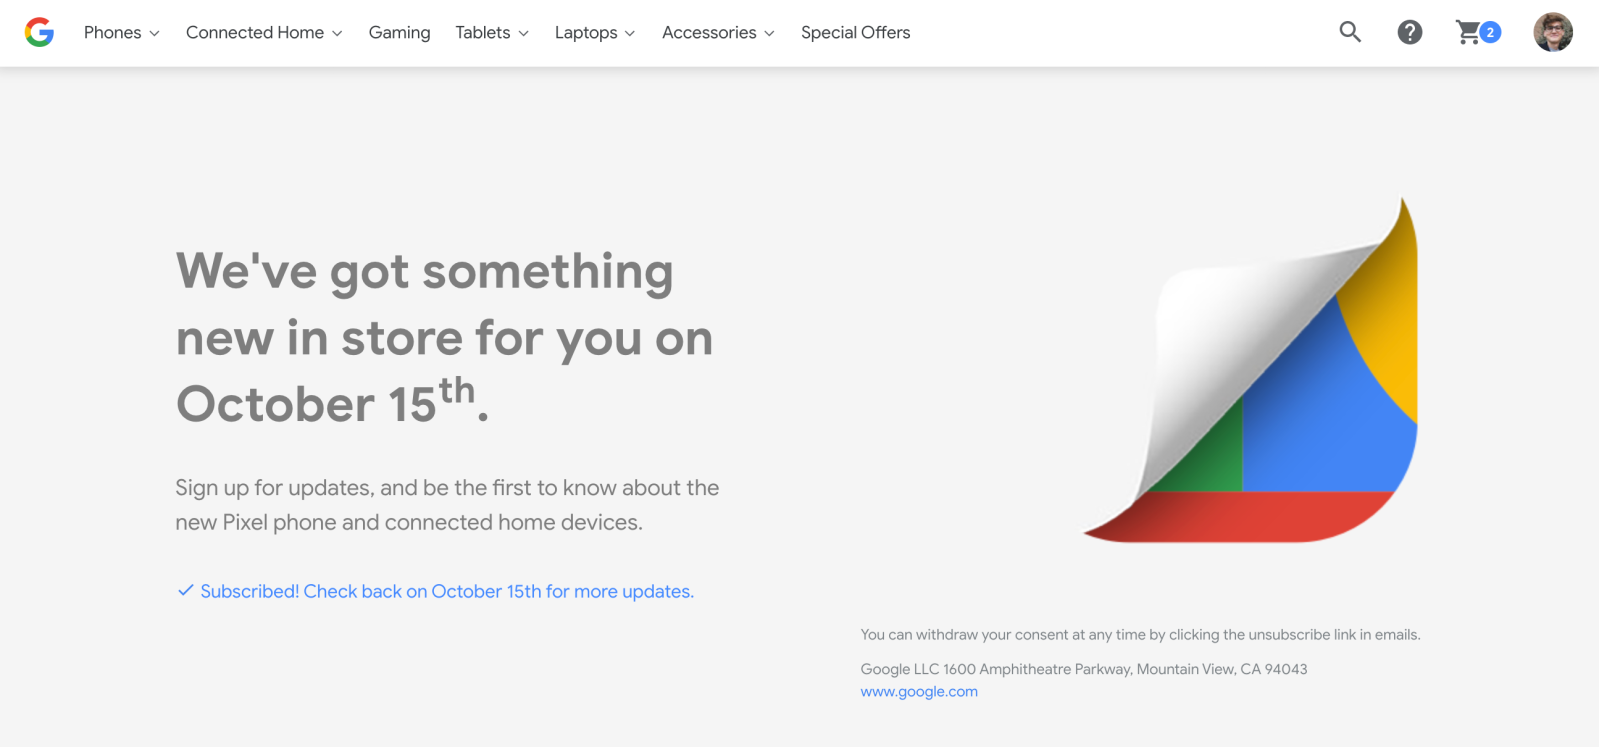 Google Store teaser copy excludes mention of Pixelbook, Watch for 10/15 event